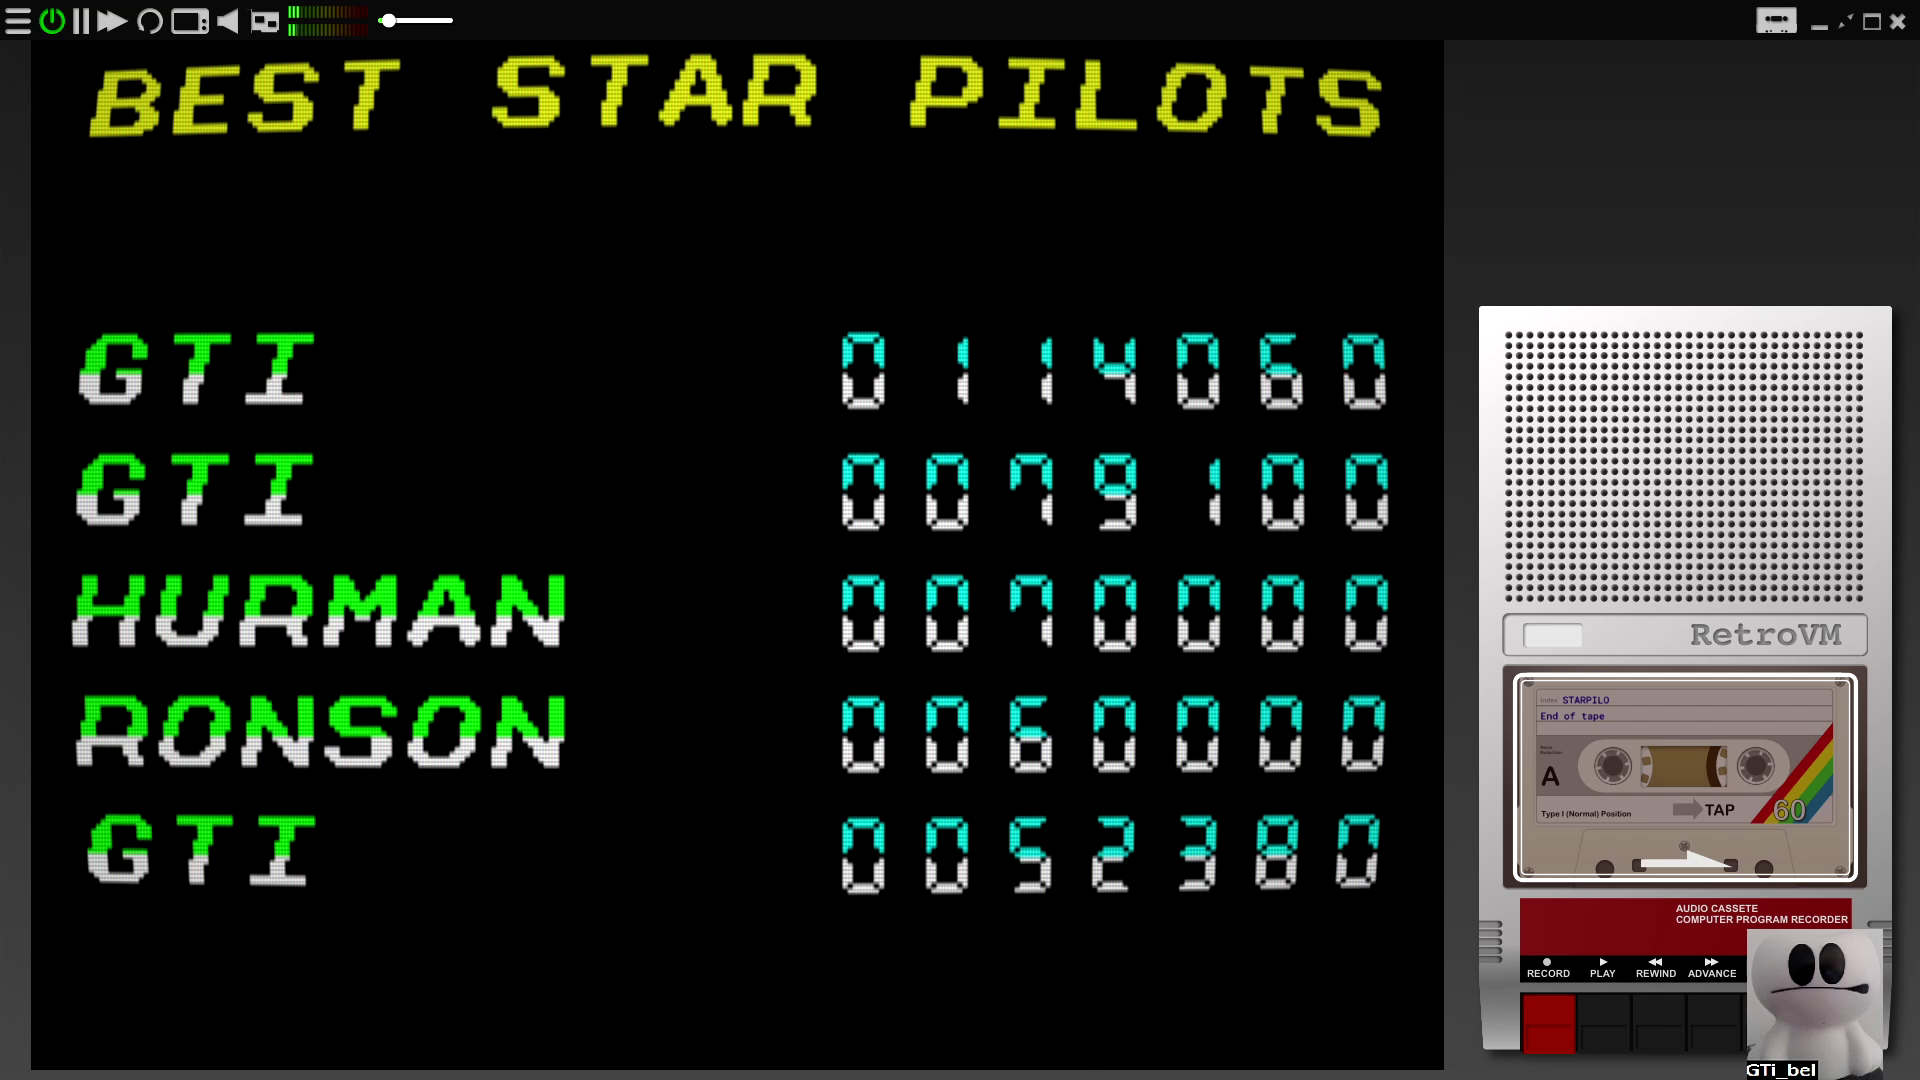 GTibel: Star Pilot (ZX Spectrum Emulated) 114,060 points on 2020-07-31 06:47:11